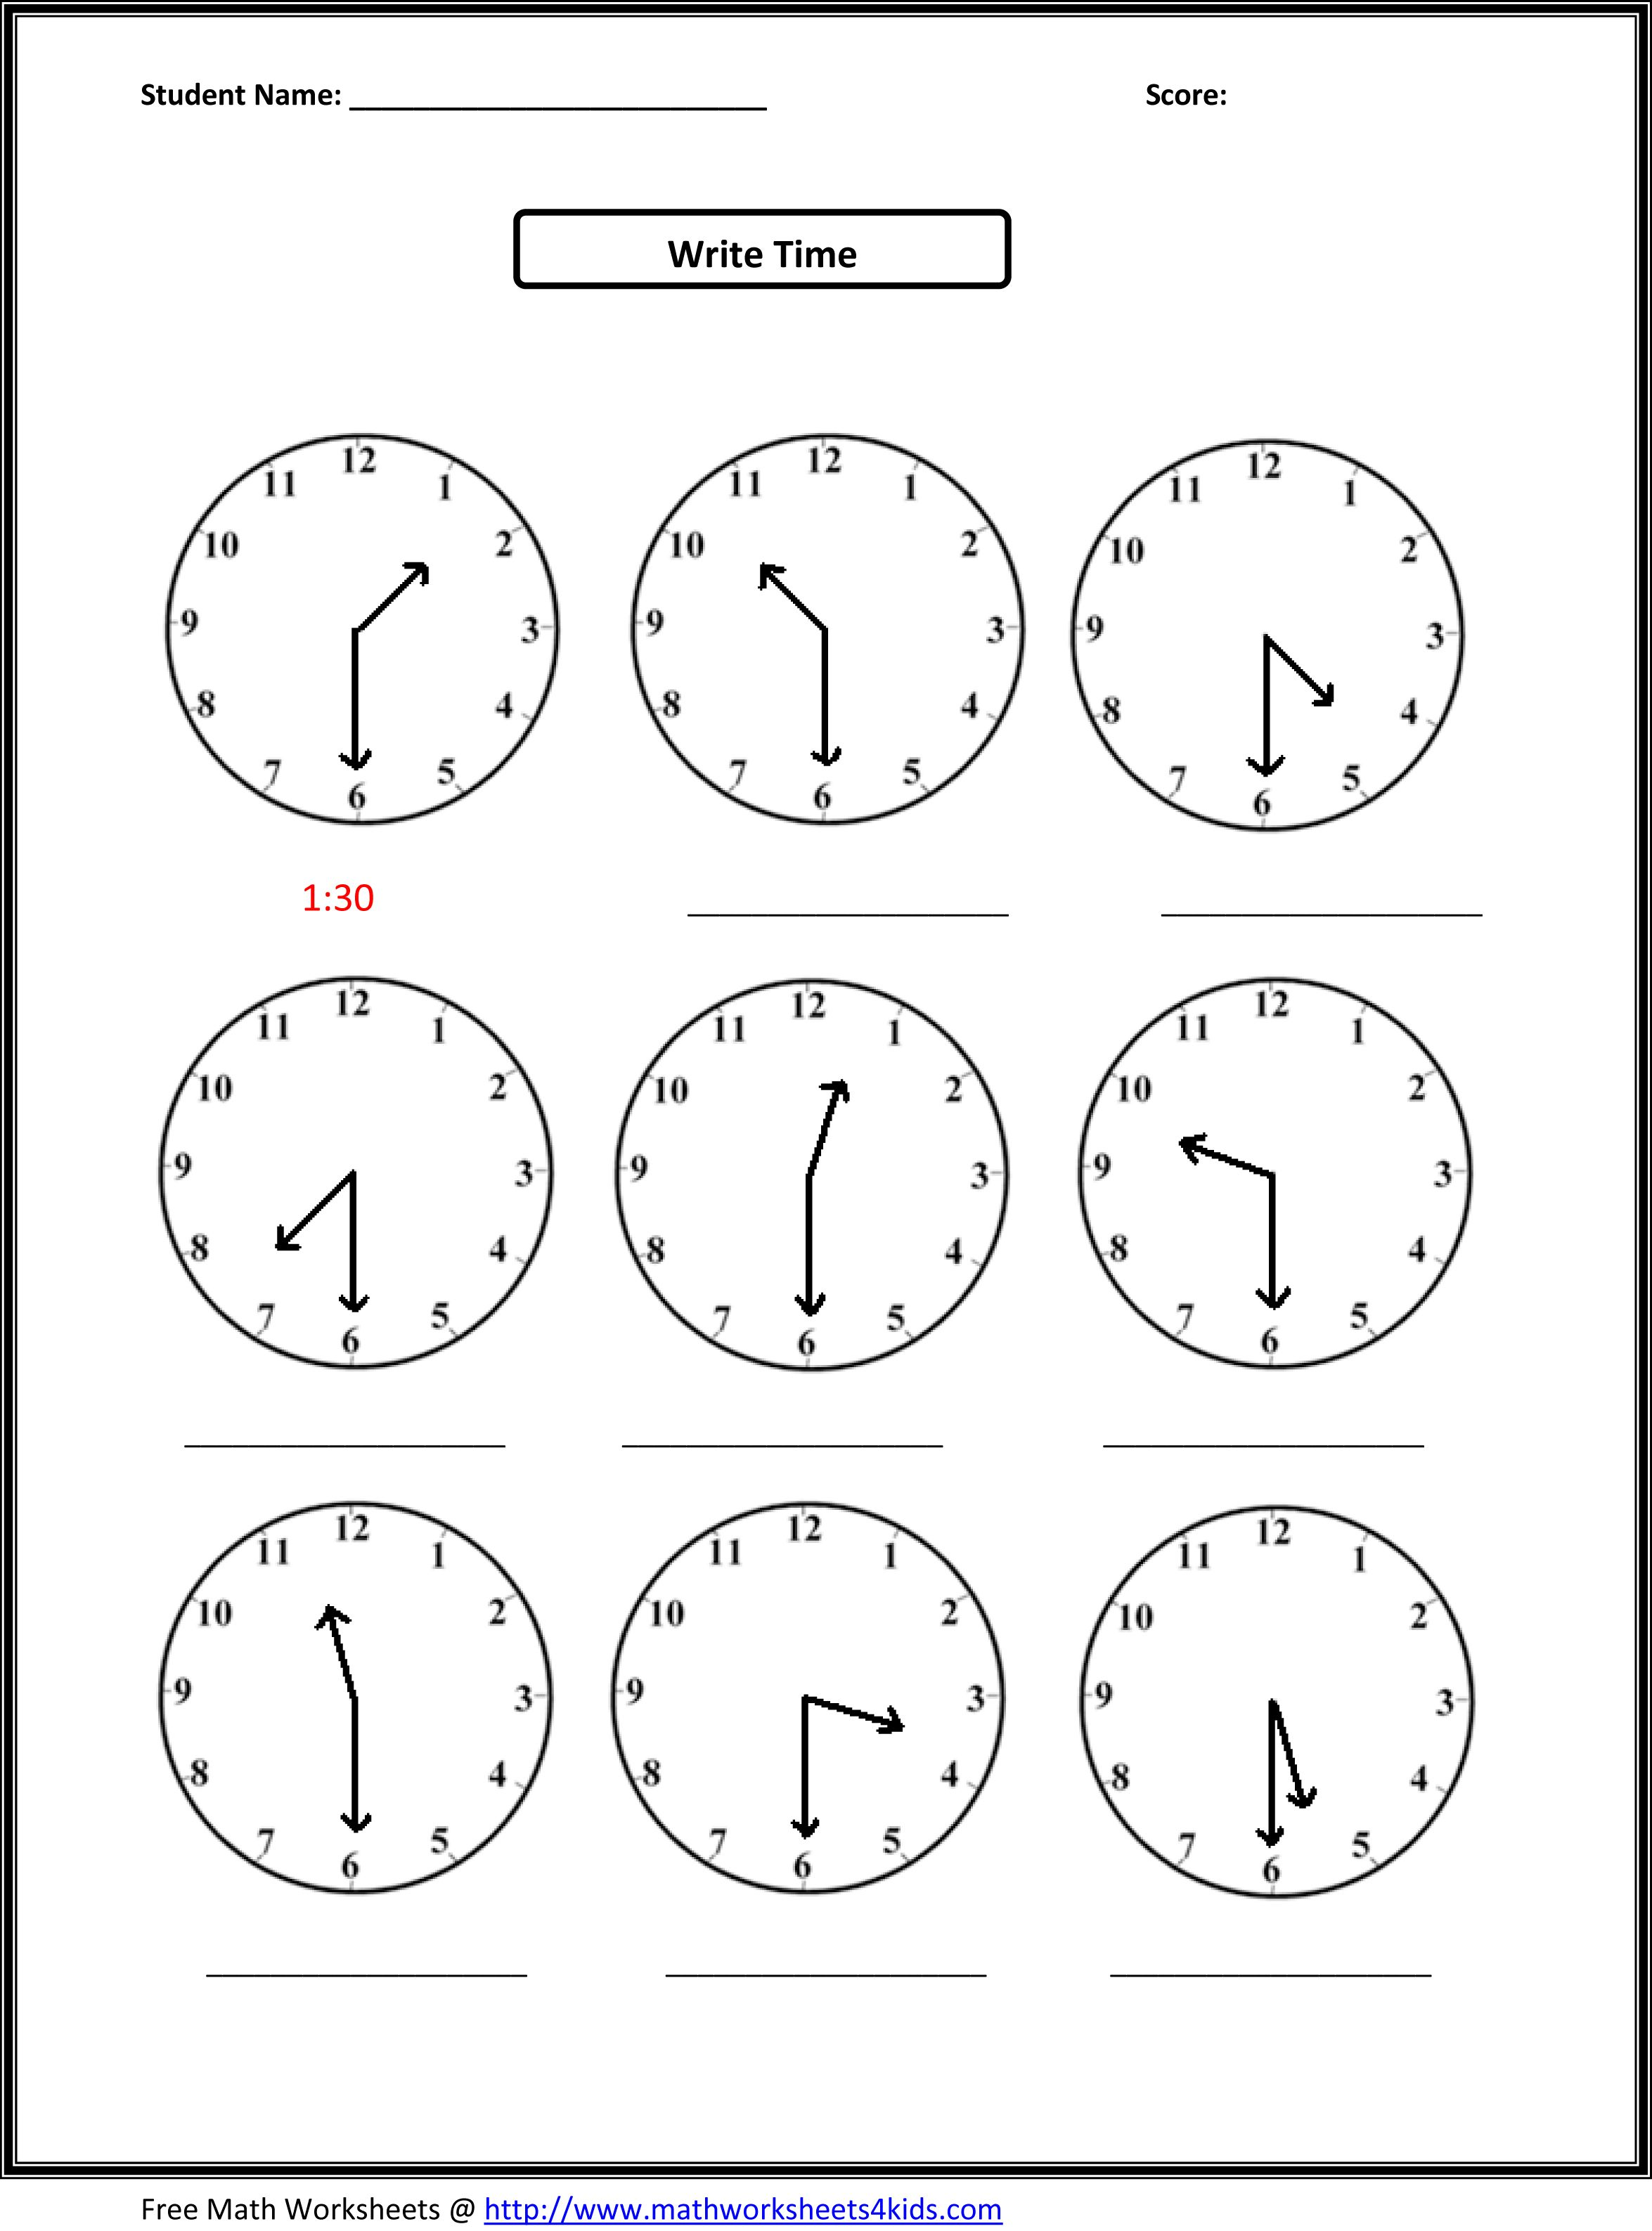 Proatmealus  Prepossessing Worksheet On Time For Grade   Reocurent With Handsome Free Printable Telling Time Worksheets Nd Grade  Reocurent With Agreeable Fraction Worksheets For Grade  Also Levels Of Organization Worksheets In Addition Simplifying Ratio Worksheet And Input Output Devices Worksheet As Well As Rewrite Sentences Worksheets Additionally Definite And Indefinite Articles English Worksheets From Reocurentcom With Proatmealus  Handsome Worksheet On Time For Grade   Reocurent With Agreeable Free Printable Telling Time Worksheets Nd Grade  Reocurent And Prepossessing Fraction Worksheets For Grade  Also Levels Of Organization Worksheets In Addition Simplifying Ratio Worksheet From Reocurentcom